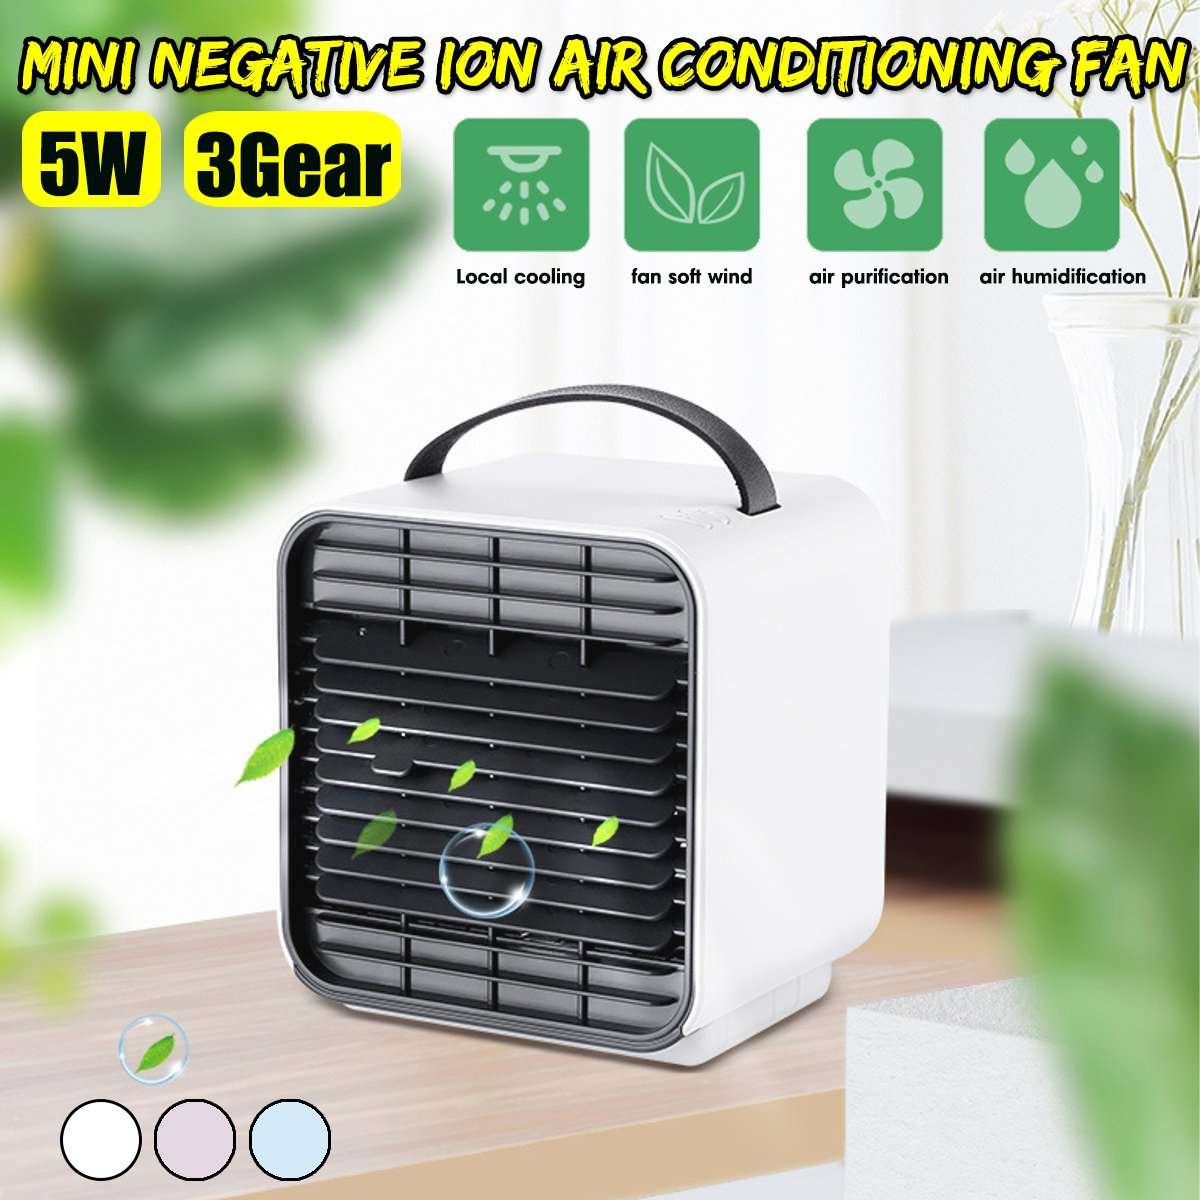 Mini Negative Ion air Conditioning Fan Air Cooler Household Cooler Office Water Cooling Fan Blue/Pink/White 5W 3Gear 2000mAhMini Negative Ion air Conditioning Fan Air Cooler Household Cooler Office Water Cooling Fan Blue/Pink/White 5W 3Gear 2000mAh